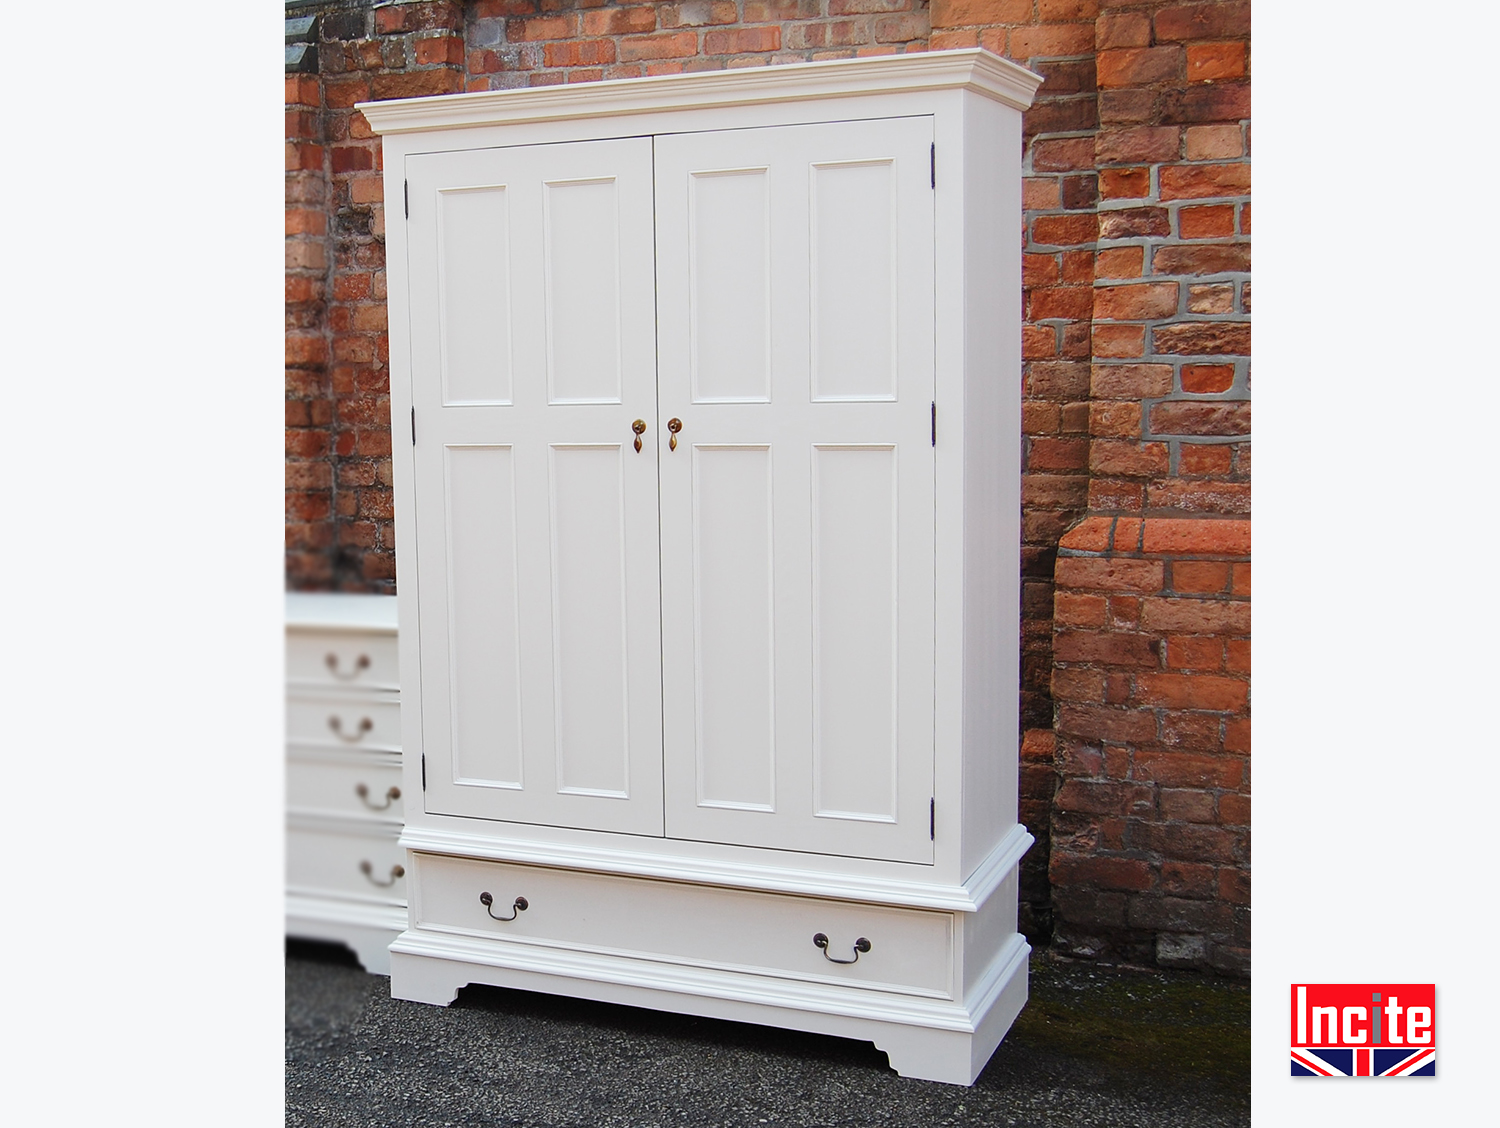 Bespoke Painted Wardrobe With Storage Drawers By Incite